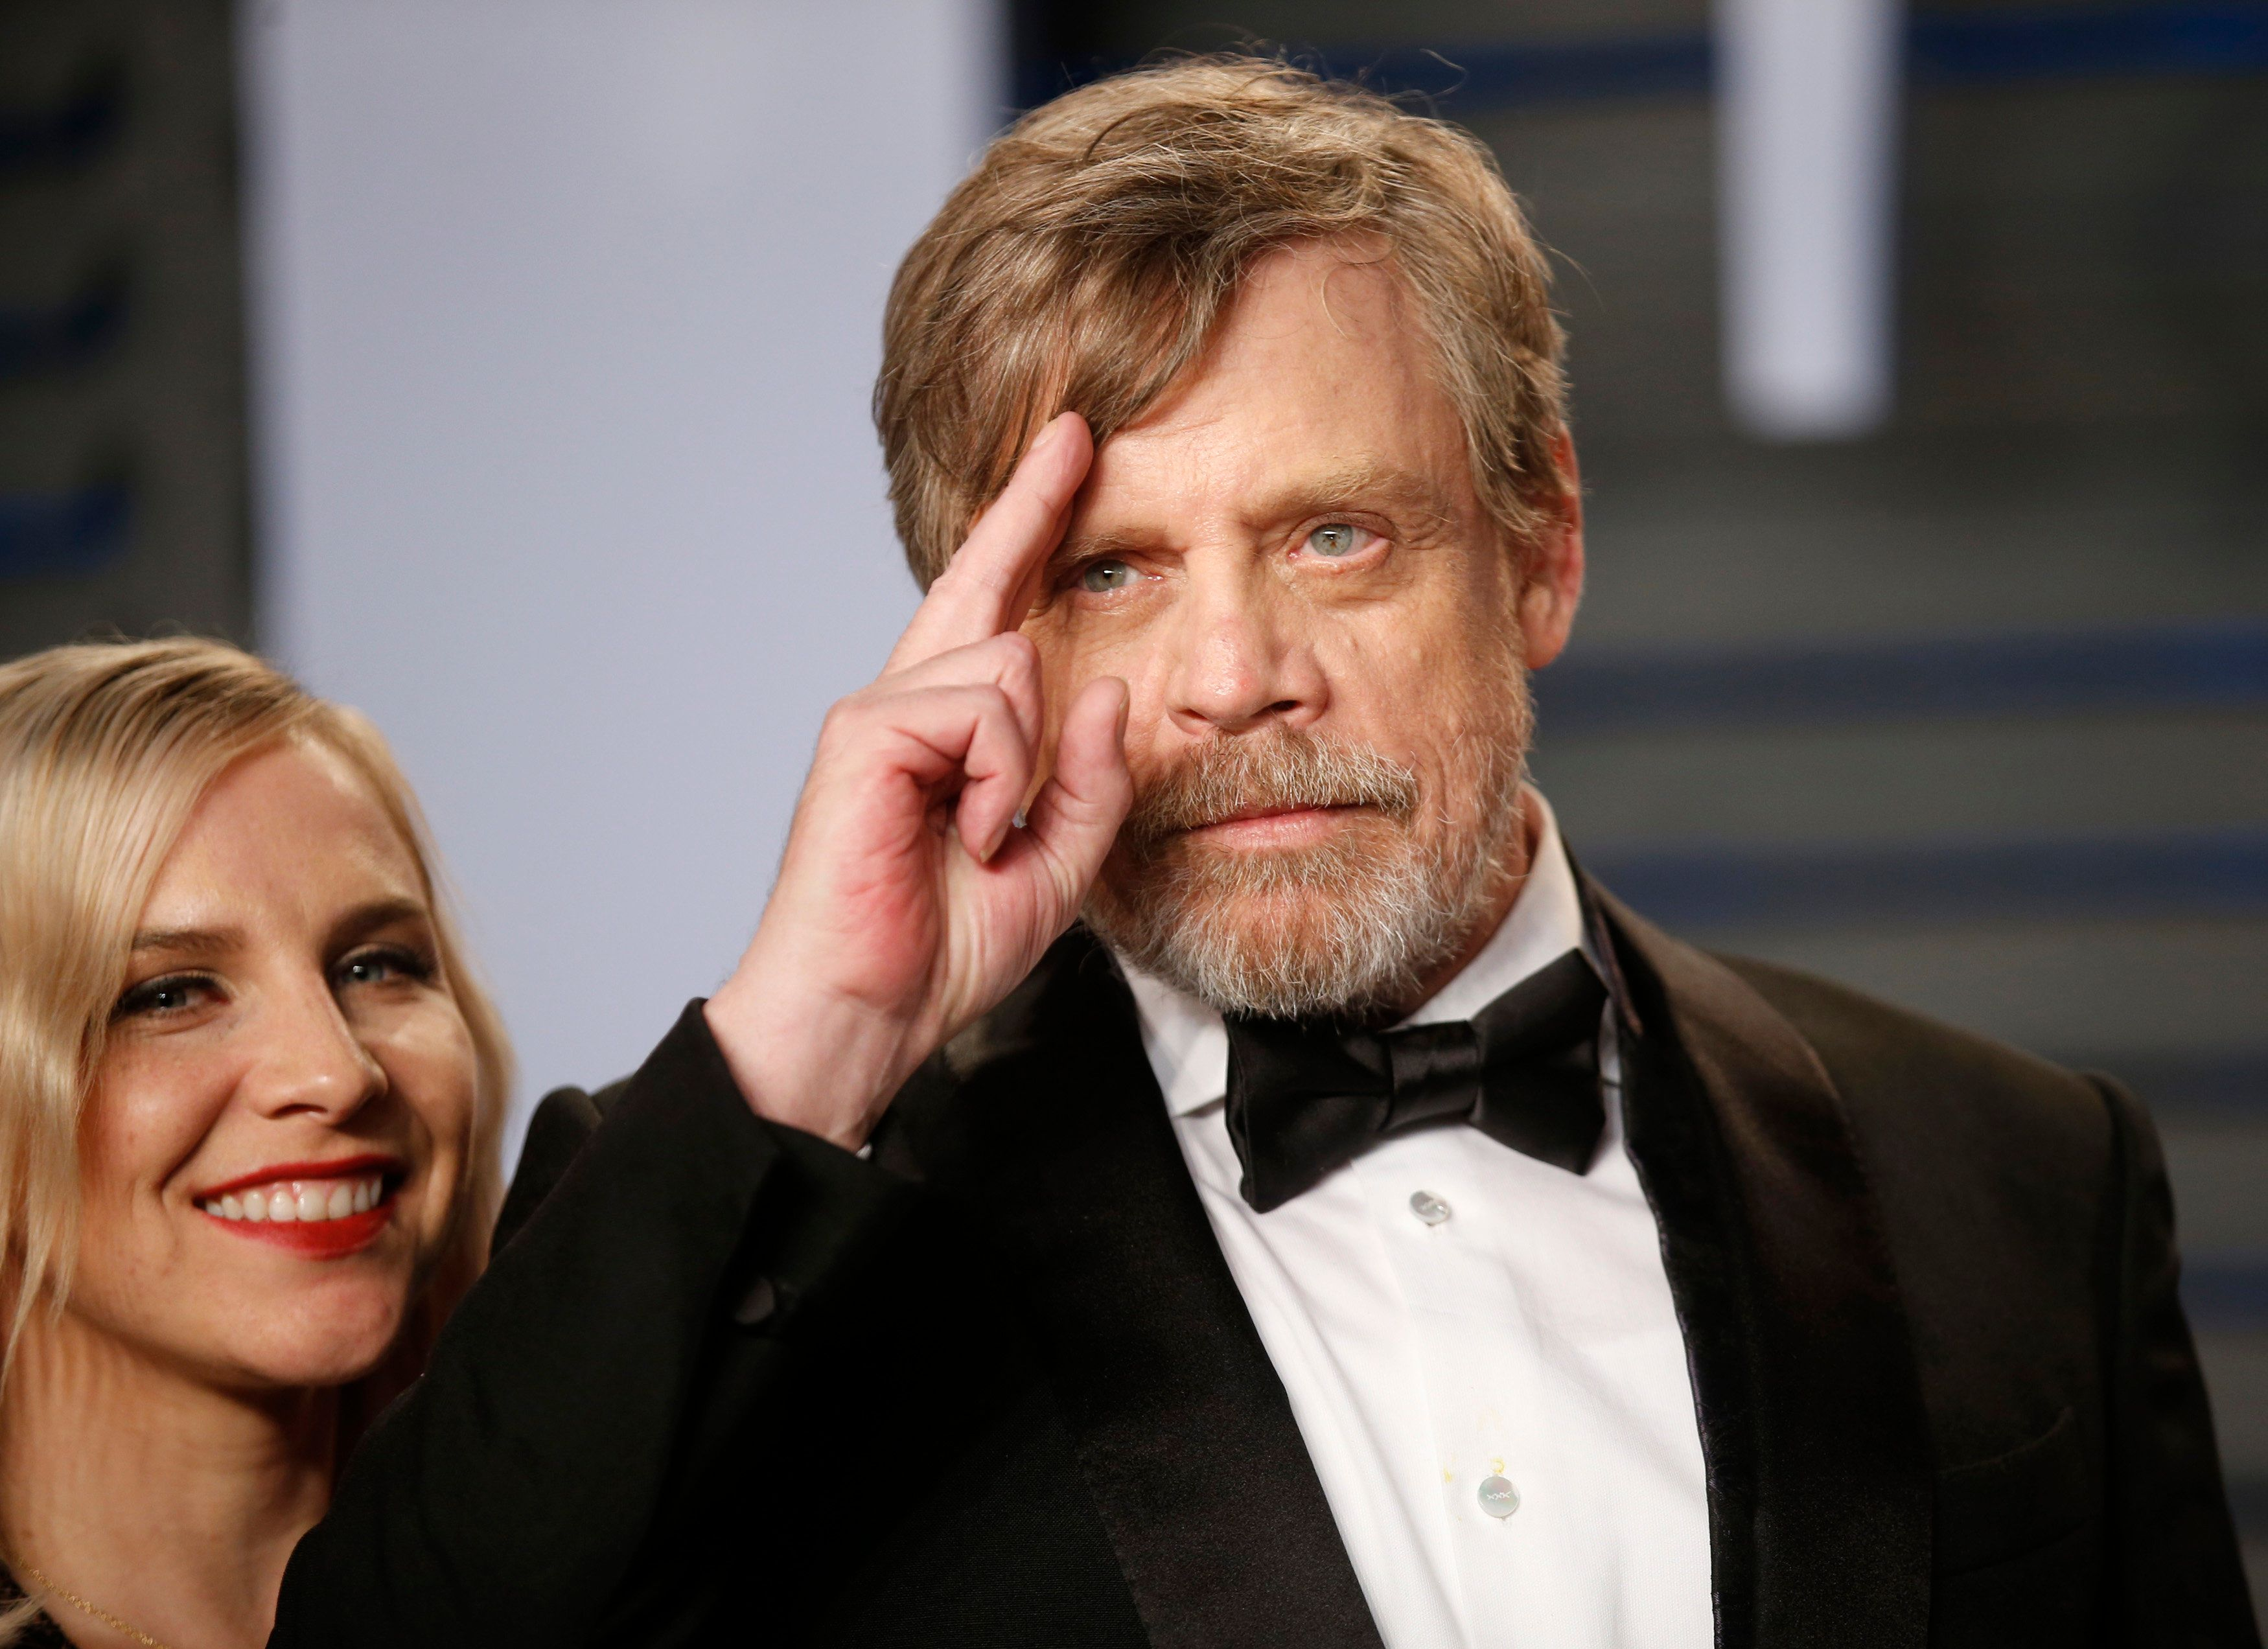 Mark Hamill Mocks Trump's 'Space Force' With 'Star Wars' Burn